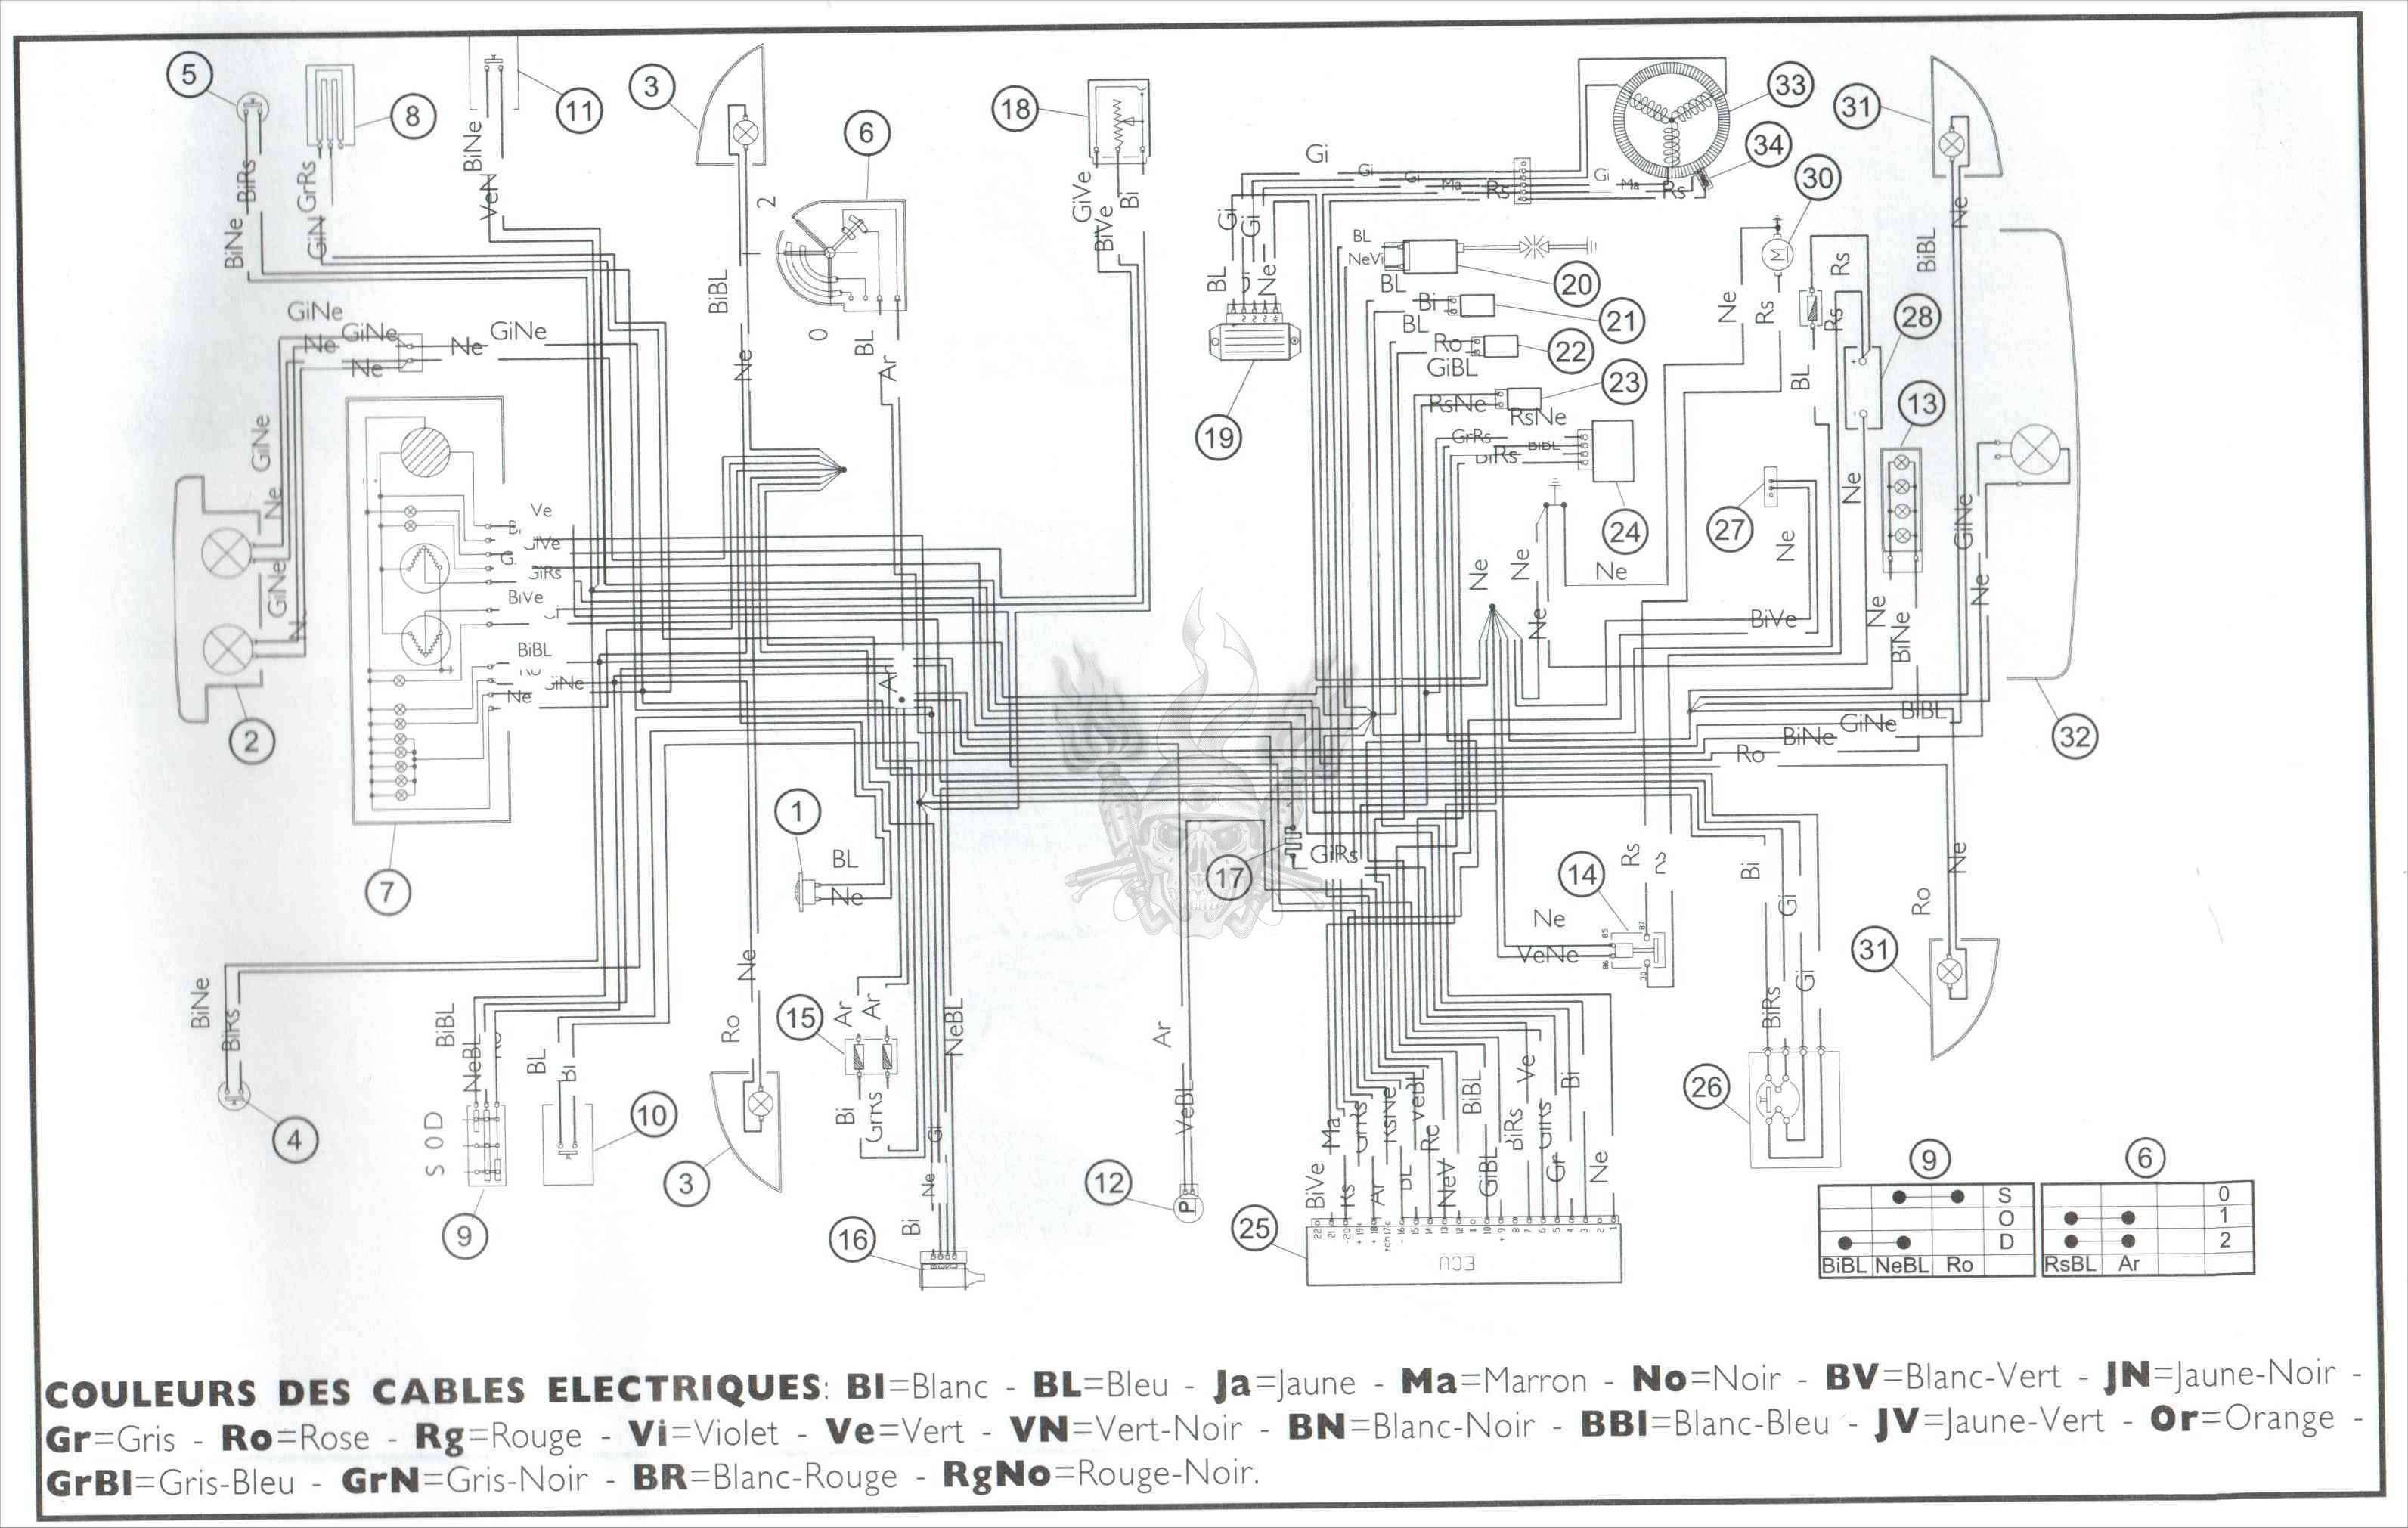 Gmc Typhoon Wiring Diagram Trusted Schematics T7500 Diagrams Drawings Www Topsimages Com 1997 Sierra 1500